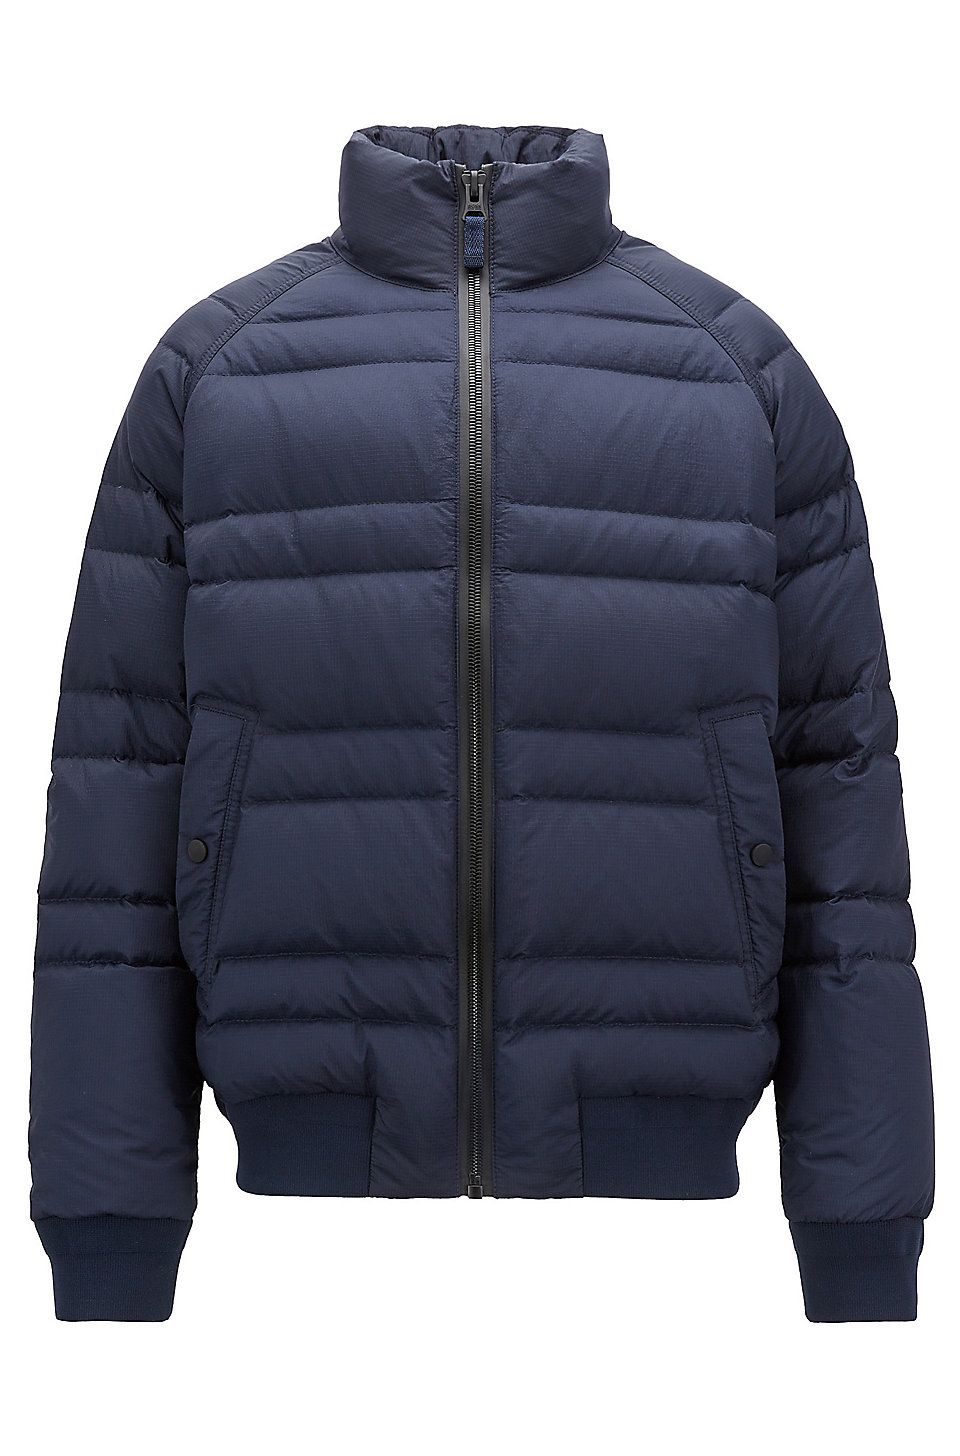 Hugo Boss Down Jacket In Water Repellent Ripstop Fabric Dark Blue Down Jackets From Boss For Men In The Official Hugo Boss Ripstop Fabric Jackets Down Jacket [ 1456 x 960 Pixel ]